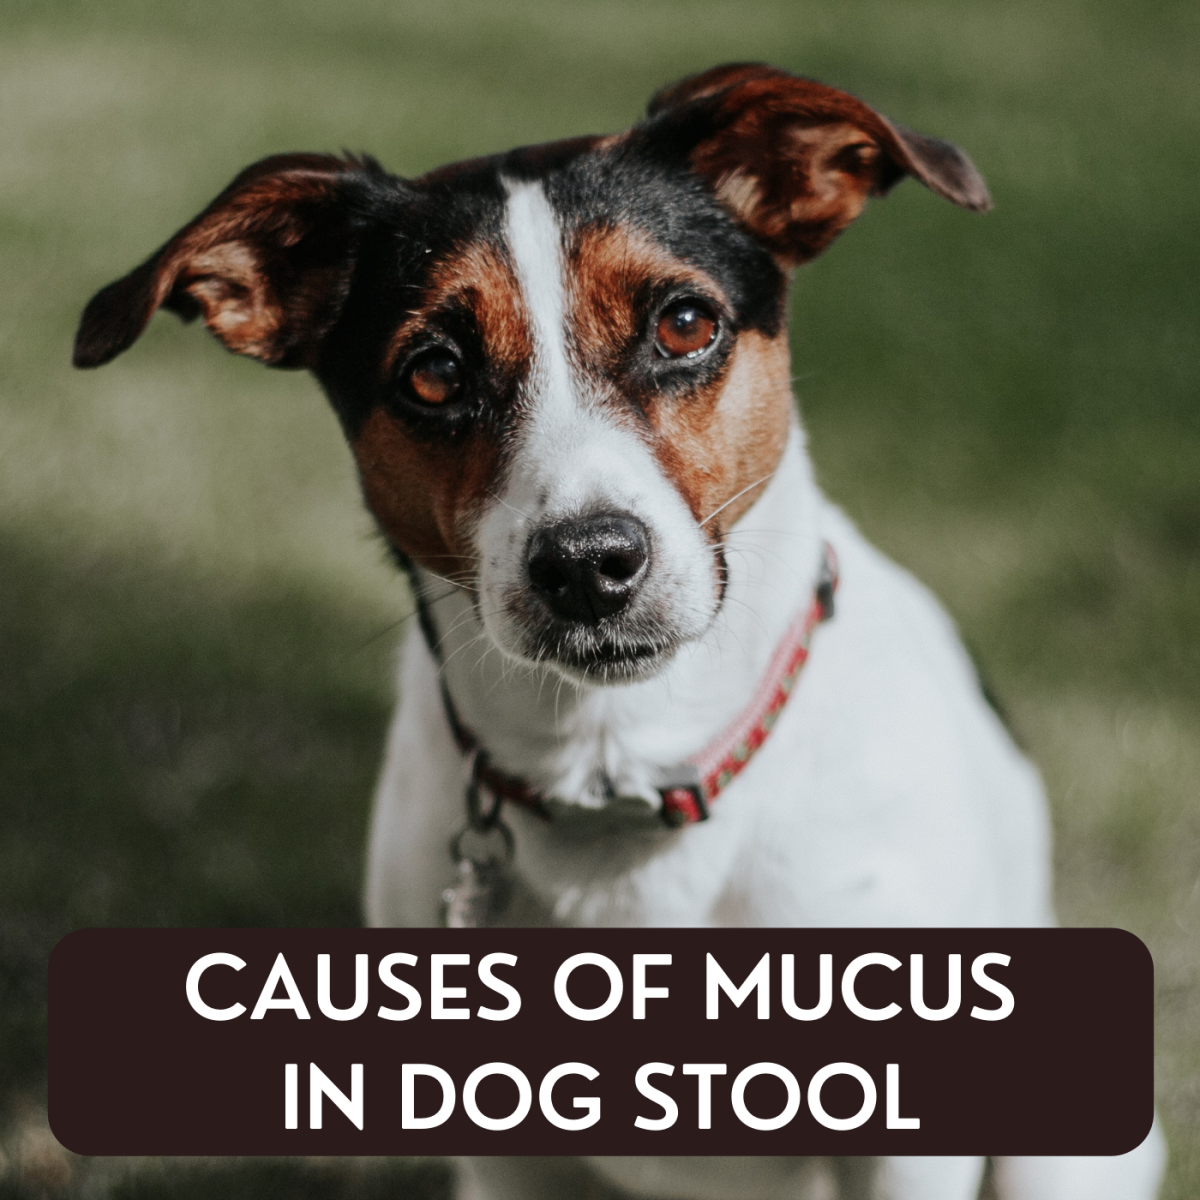 It's not uncommon to find mucus in your dog's stool, and some of the causes are benign. Learn more about why this occurs and when you should be concerned.